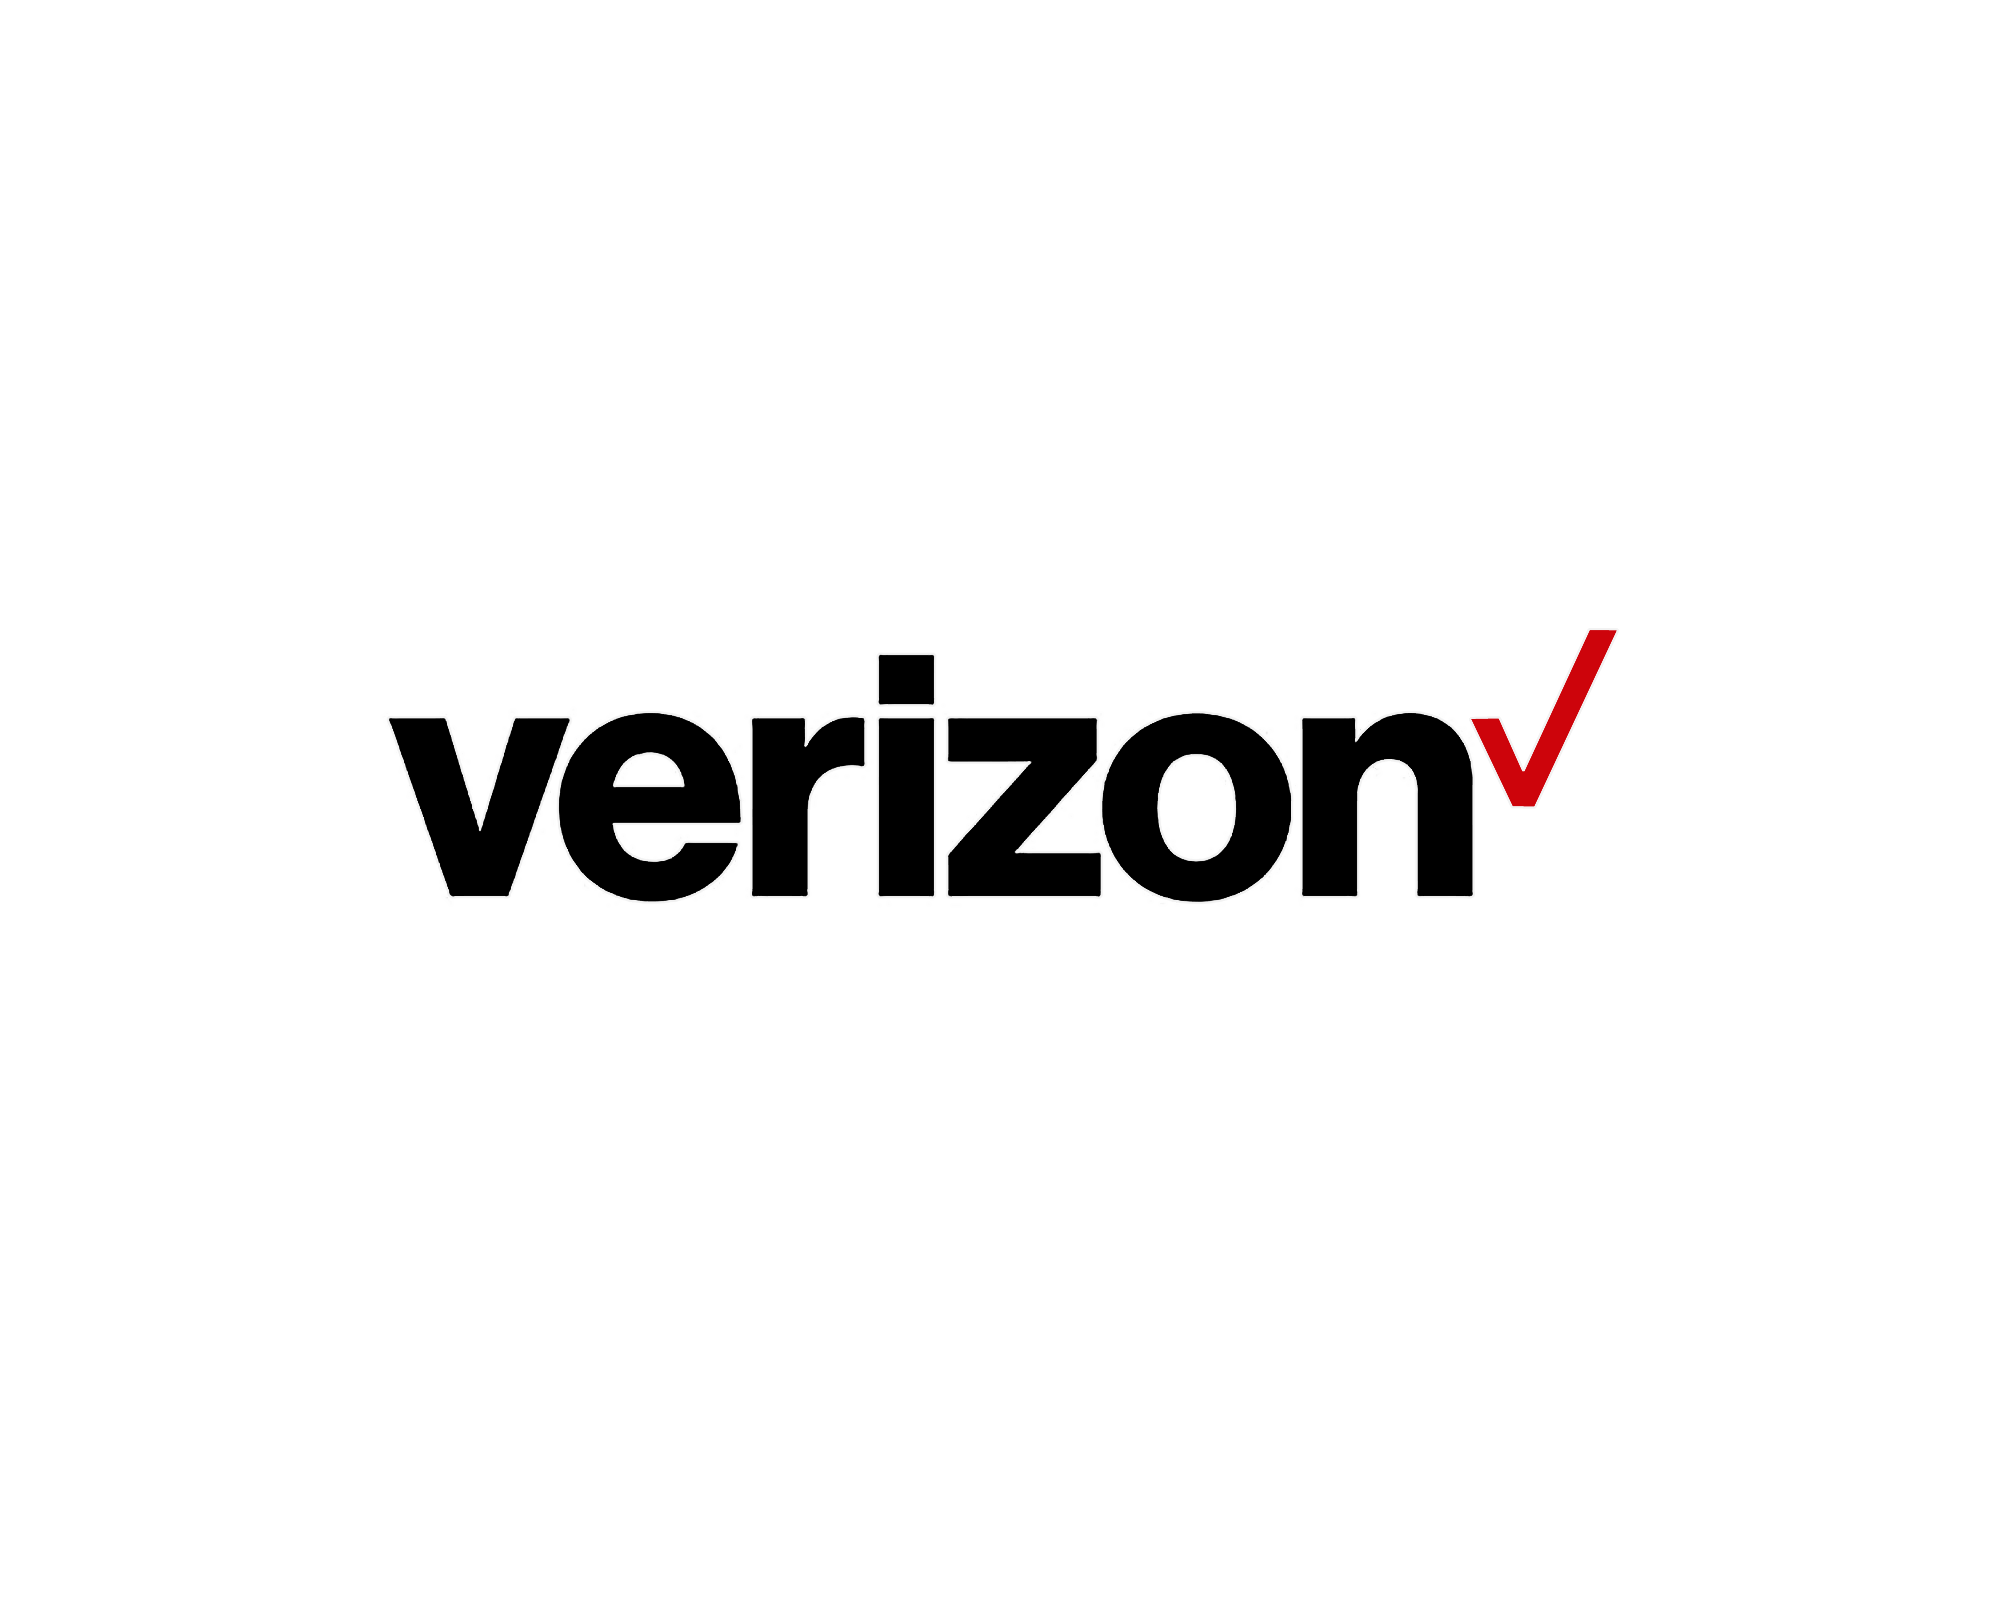 Costco Wireless offers big savings on phones from Verizon, AT&T, T-Mobile, and Sprint. In additional to great prices, Costco Wireless offers Free New Activation, Free .